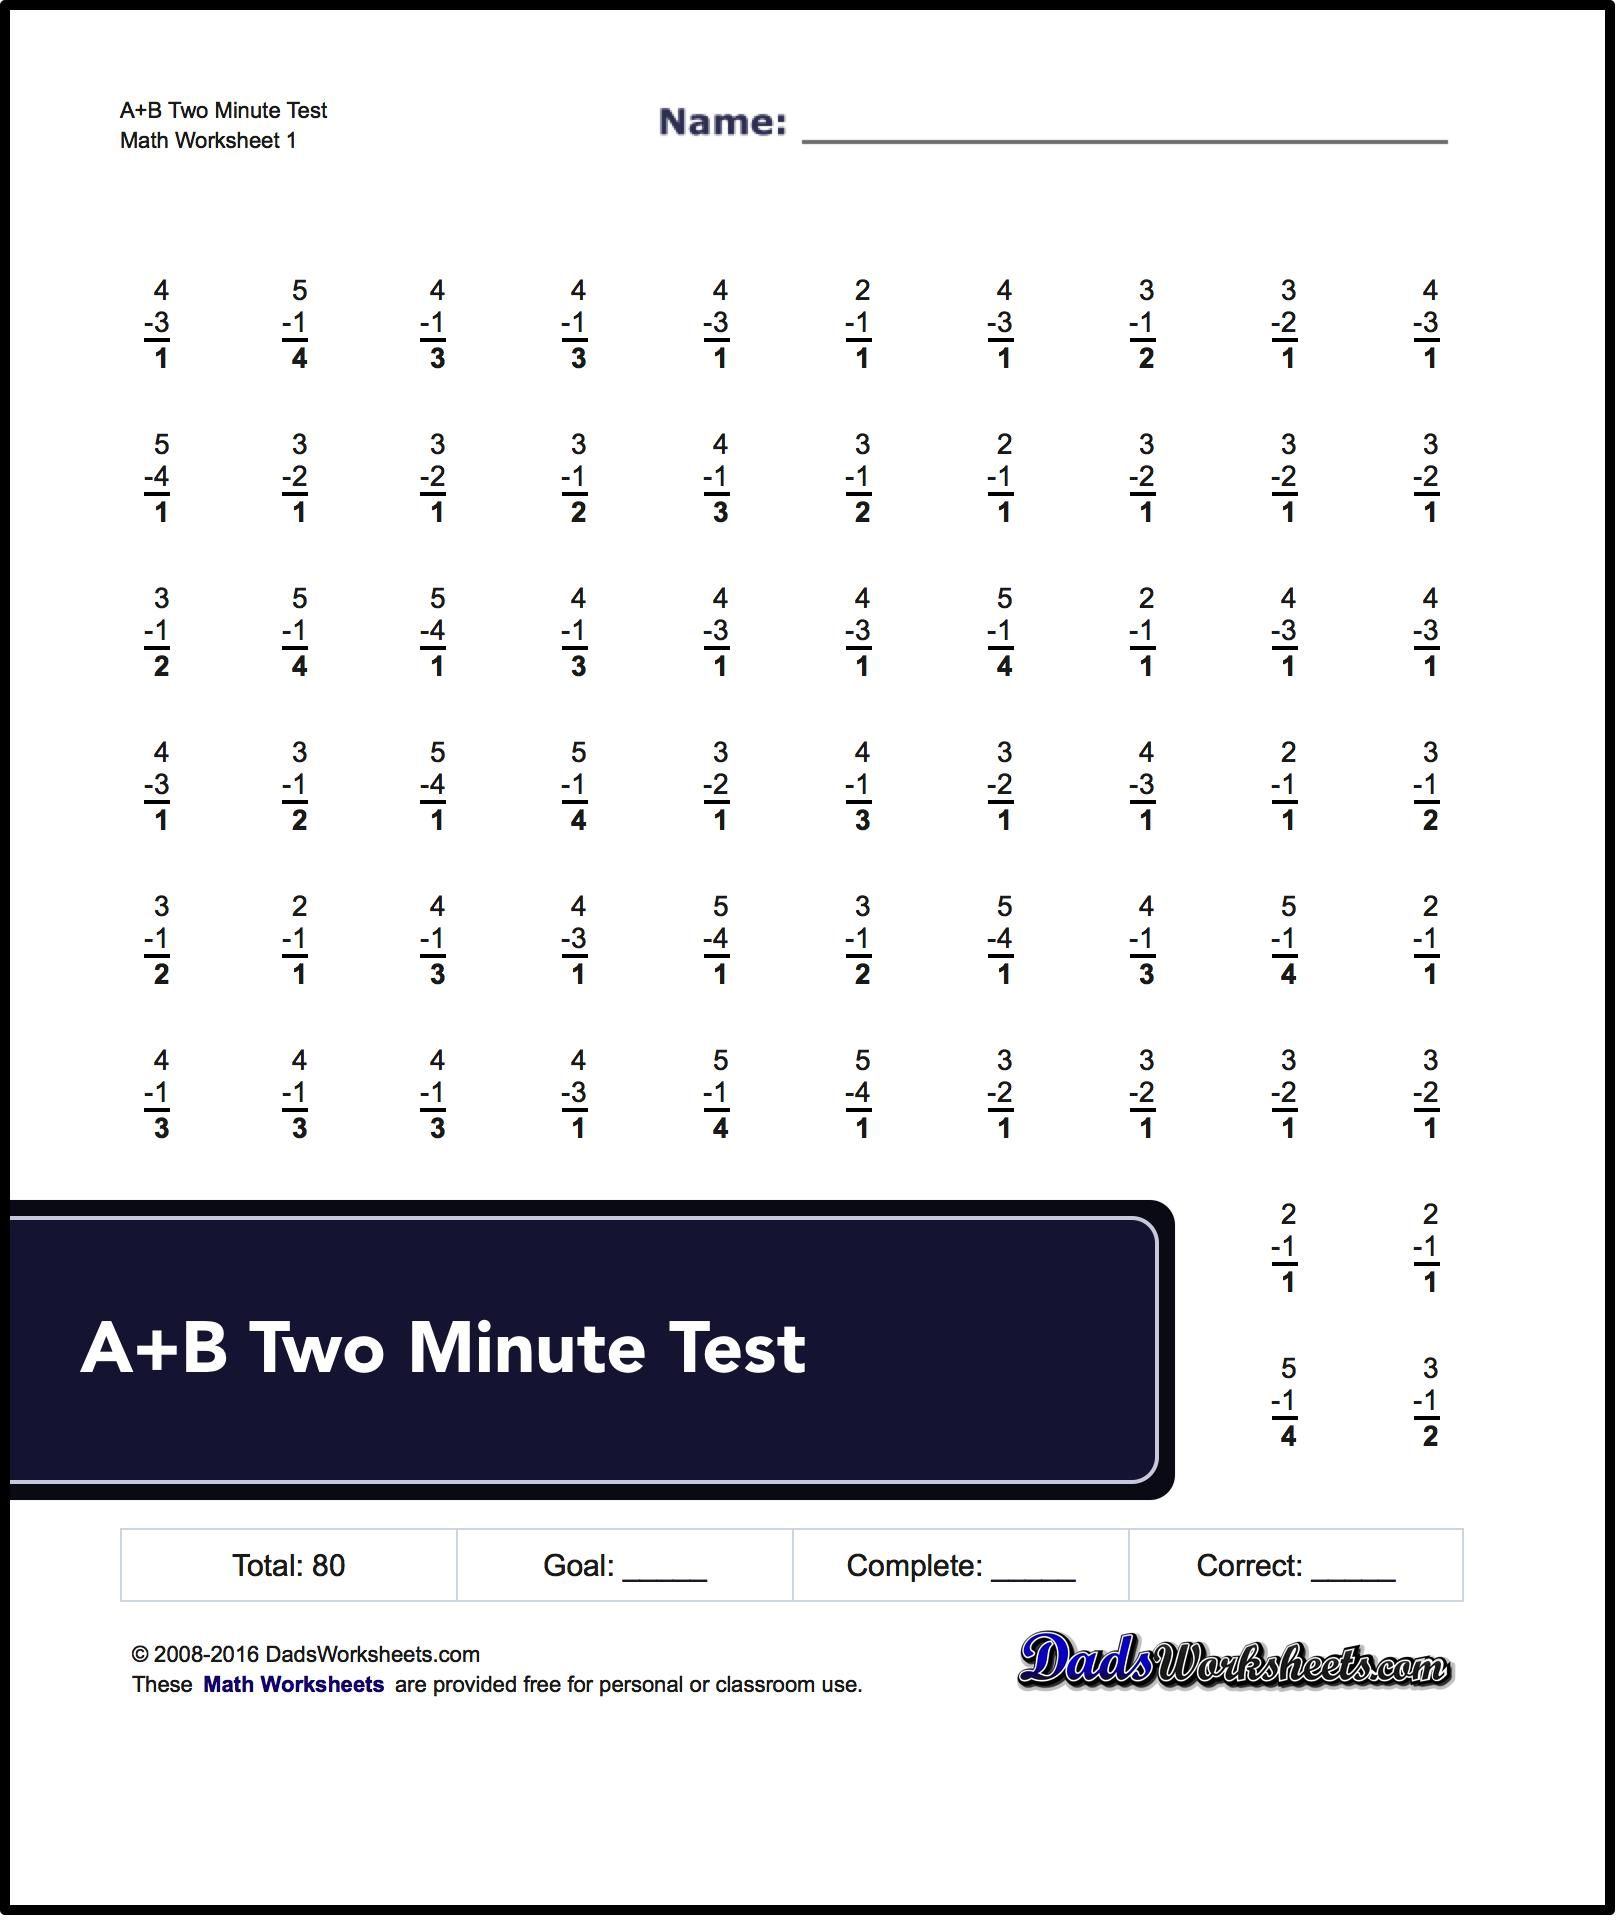 worksheet Mad Minute Division two minute versions of the spaceship math subtraction worksheets 80 and 100 problem mathrocketmathmad timed multiplication worksheets